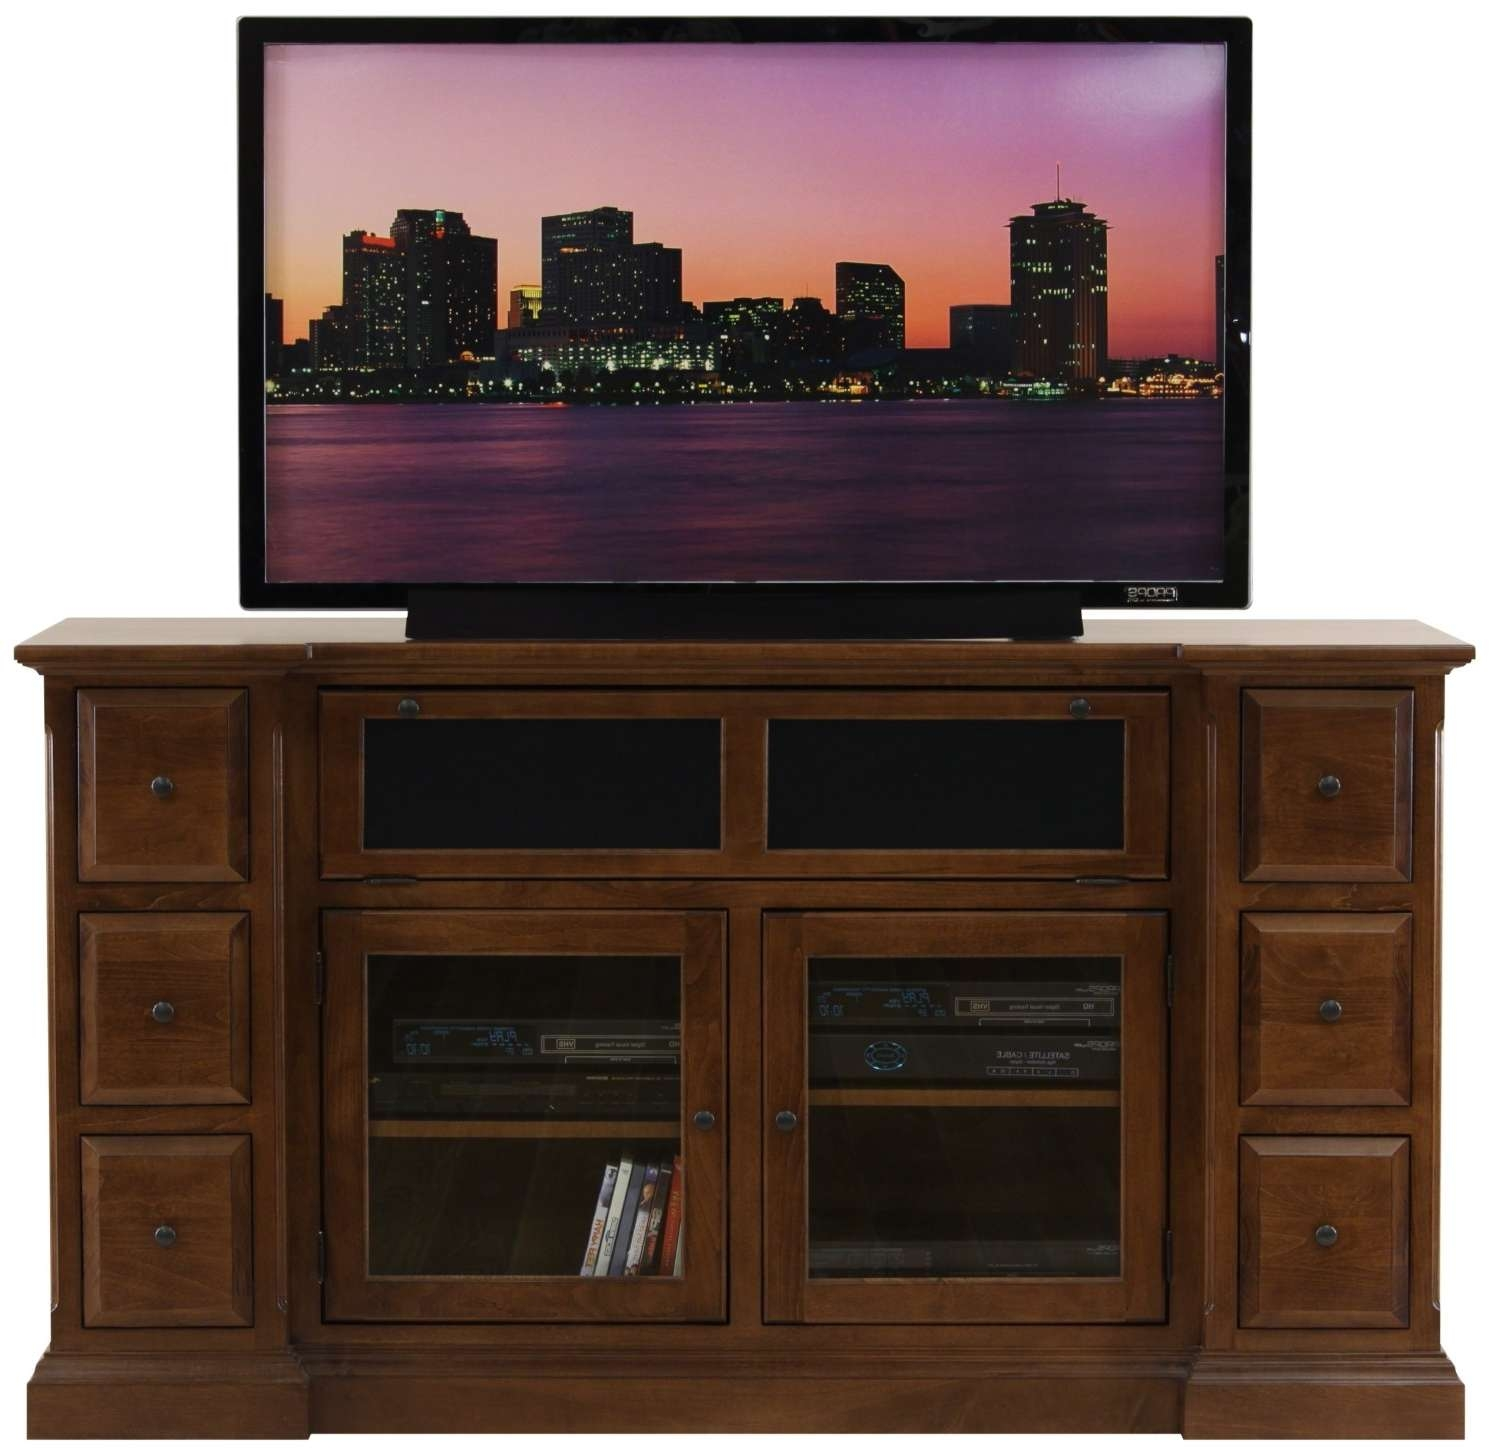 Brown Wooden Tv Stand With Storage With Glass Doors Combined With Within Wooden Tv Cabinets With Glass Doors (View 8 of 20)